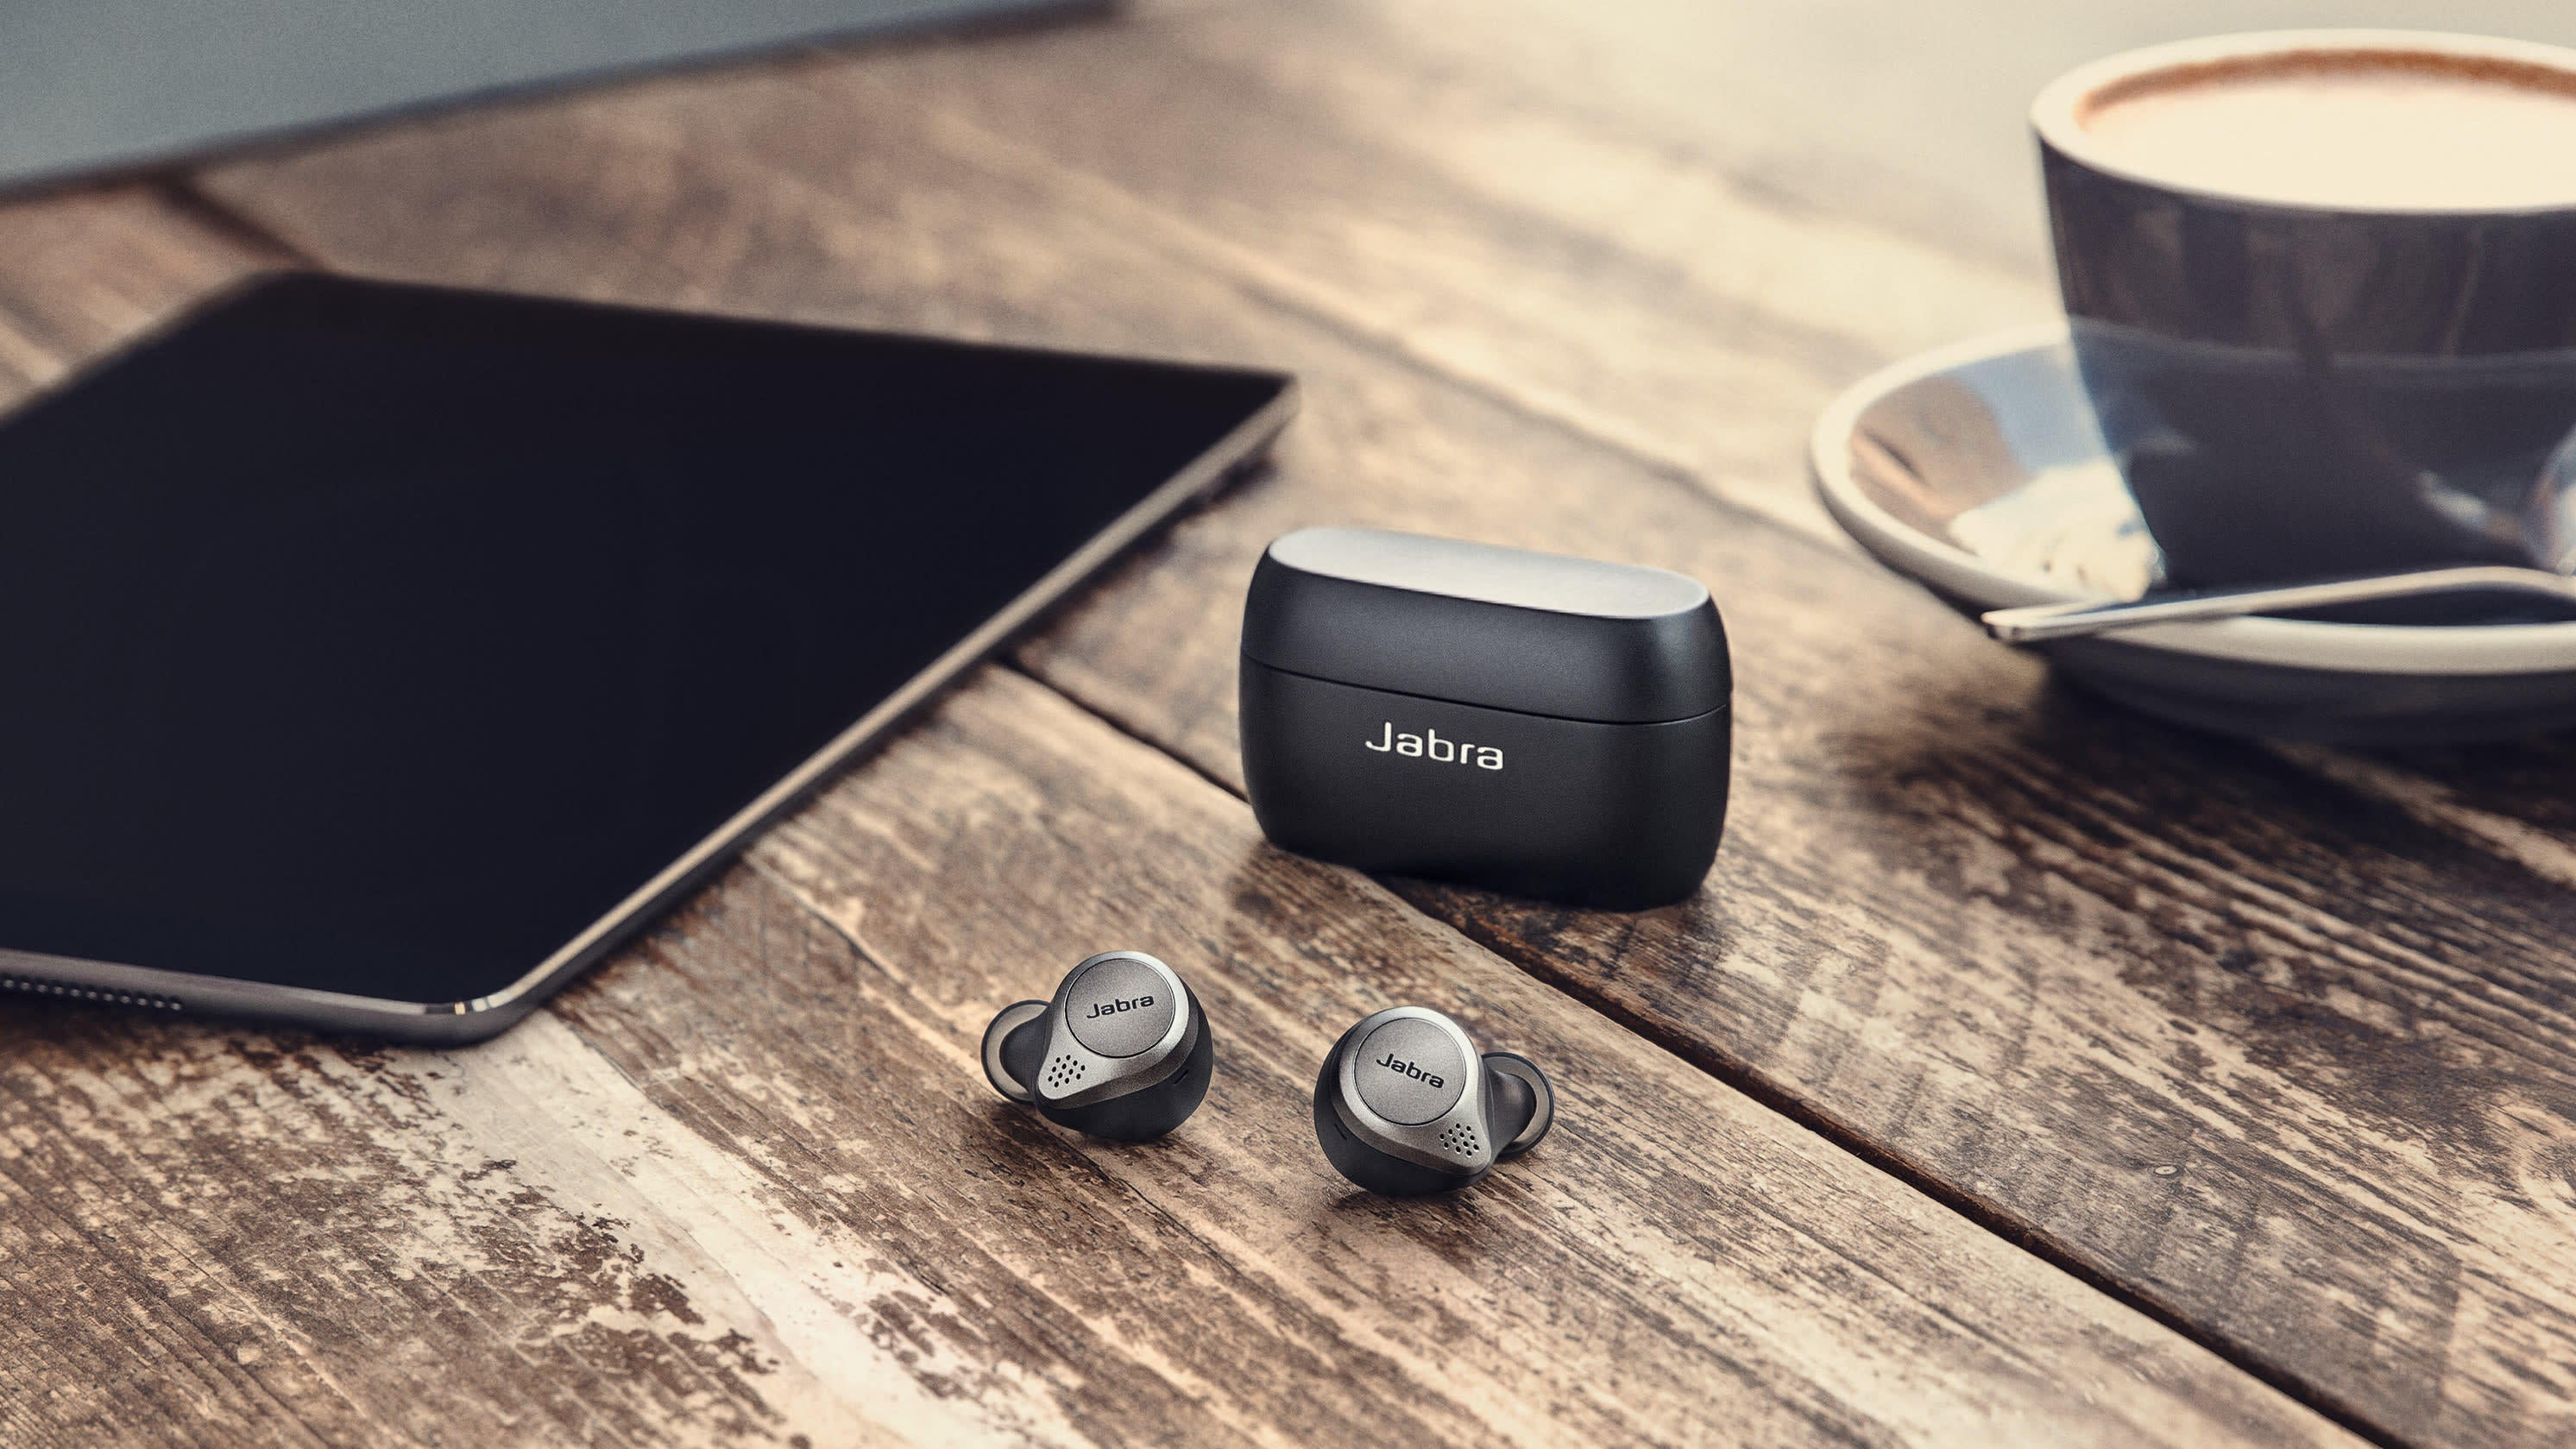 Jabra's Great Truly Wireless Earbuds Just Got Better